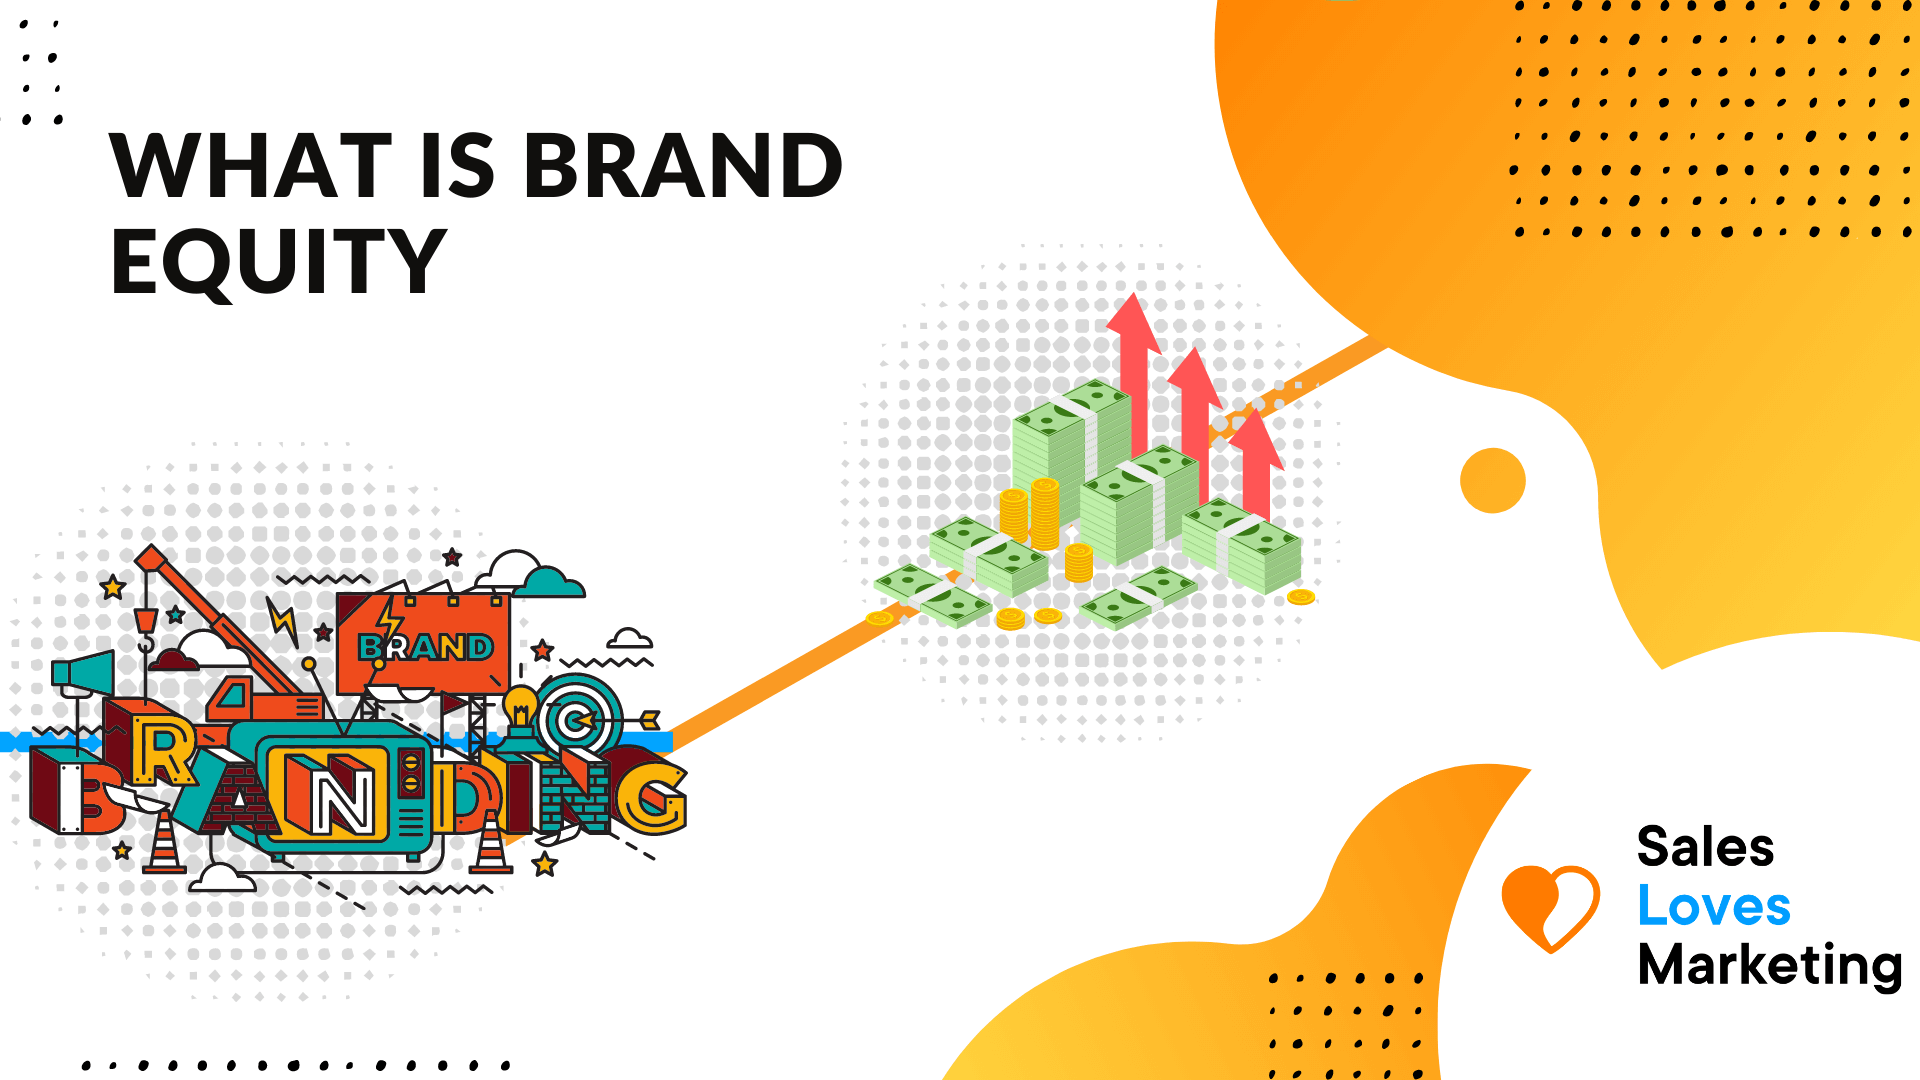 What is Brand Equity, how to measure it and some best practise examples.